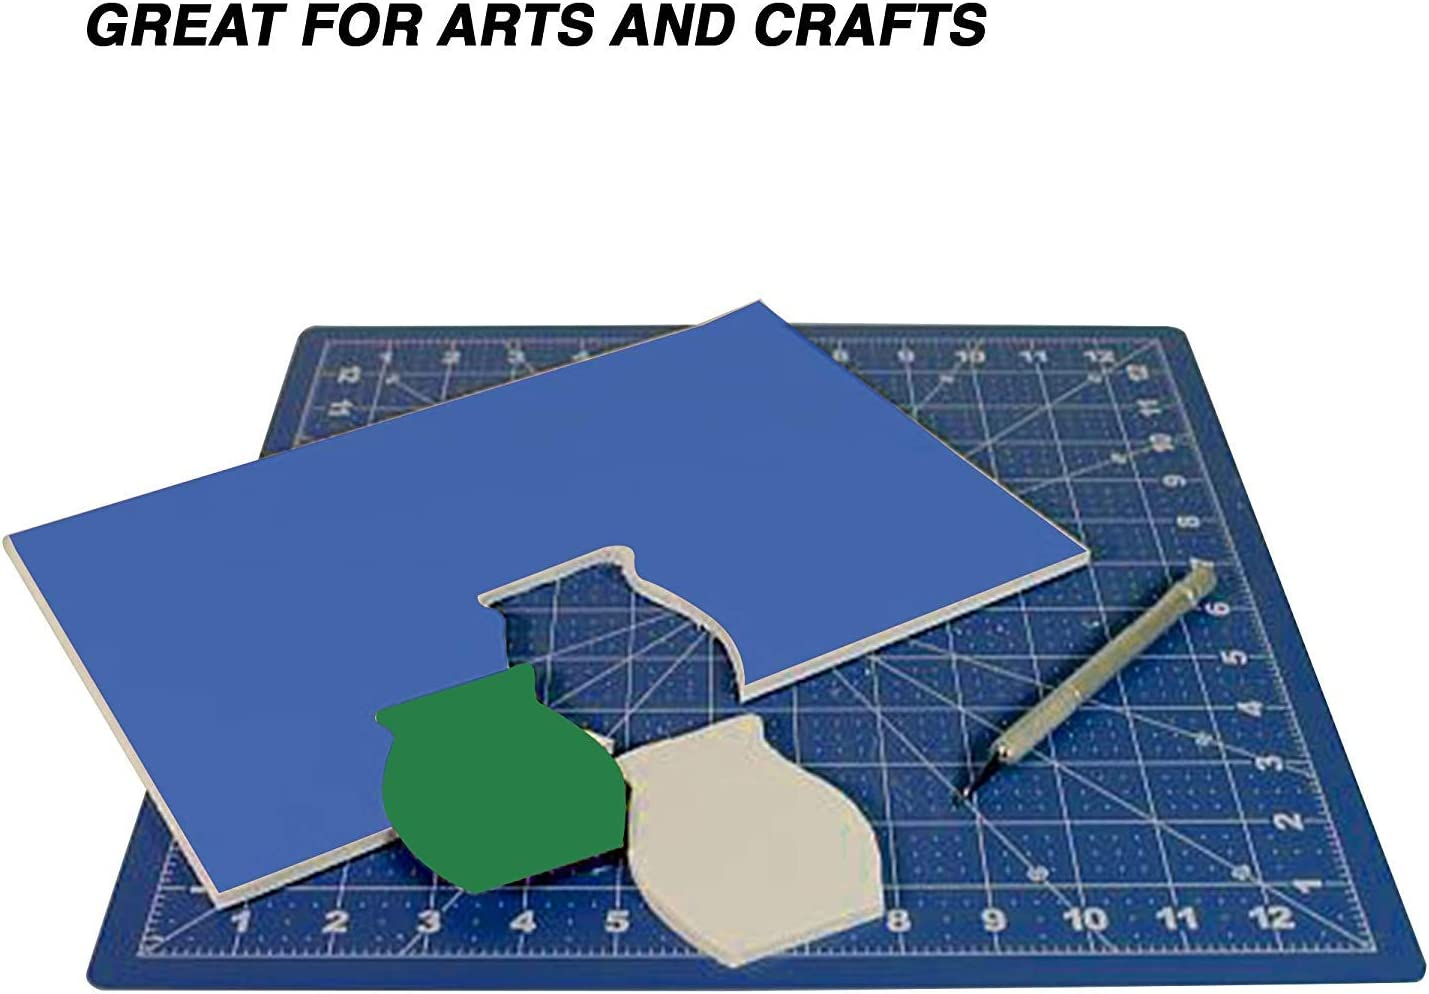 Pack of 12 Black Foam Board Non Toxic High Grade 20 X 30 Sheets Perfect for School DIY Arts /& Craft by Emraw Office and Home